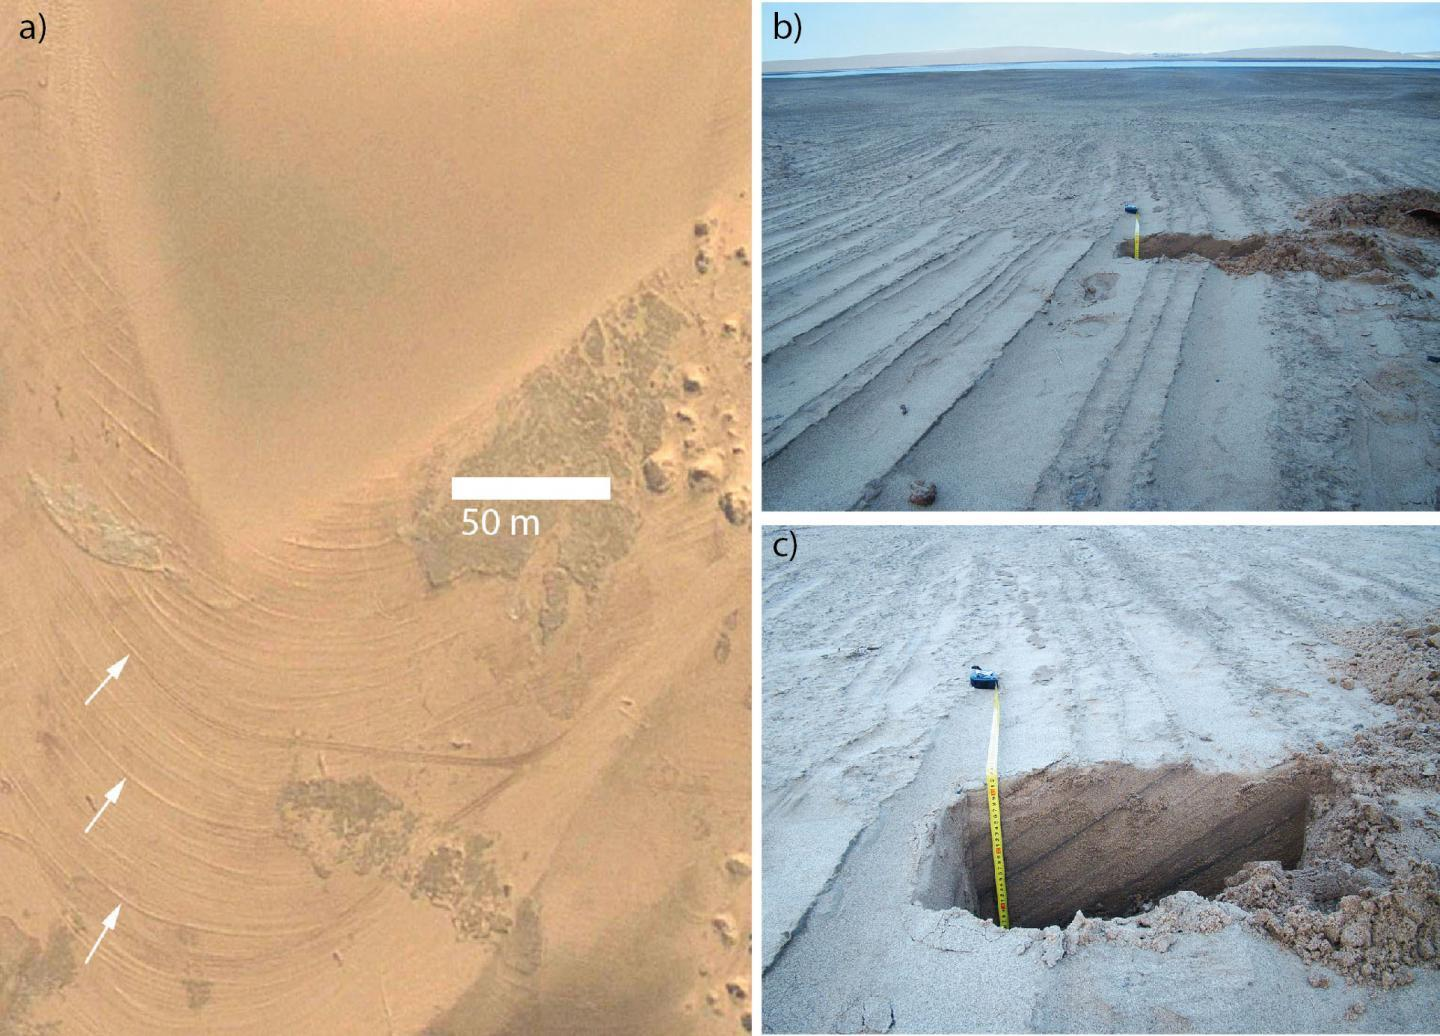 Researchers studied the migration of dunes in Namibia. They hypothesize that similar processes may have occurred on Mars.